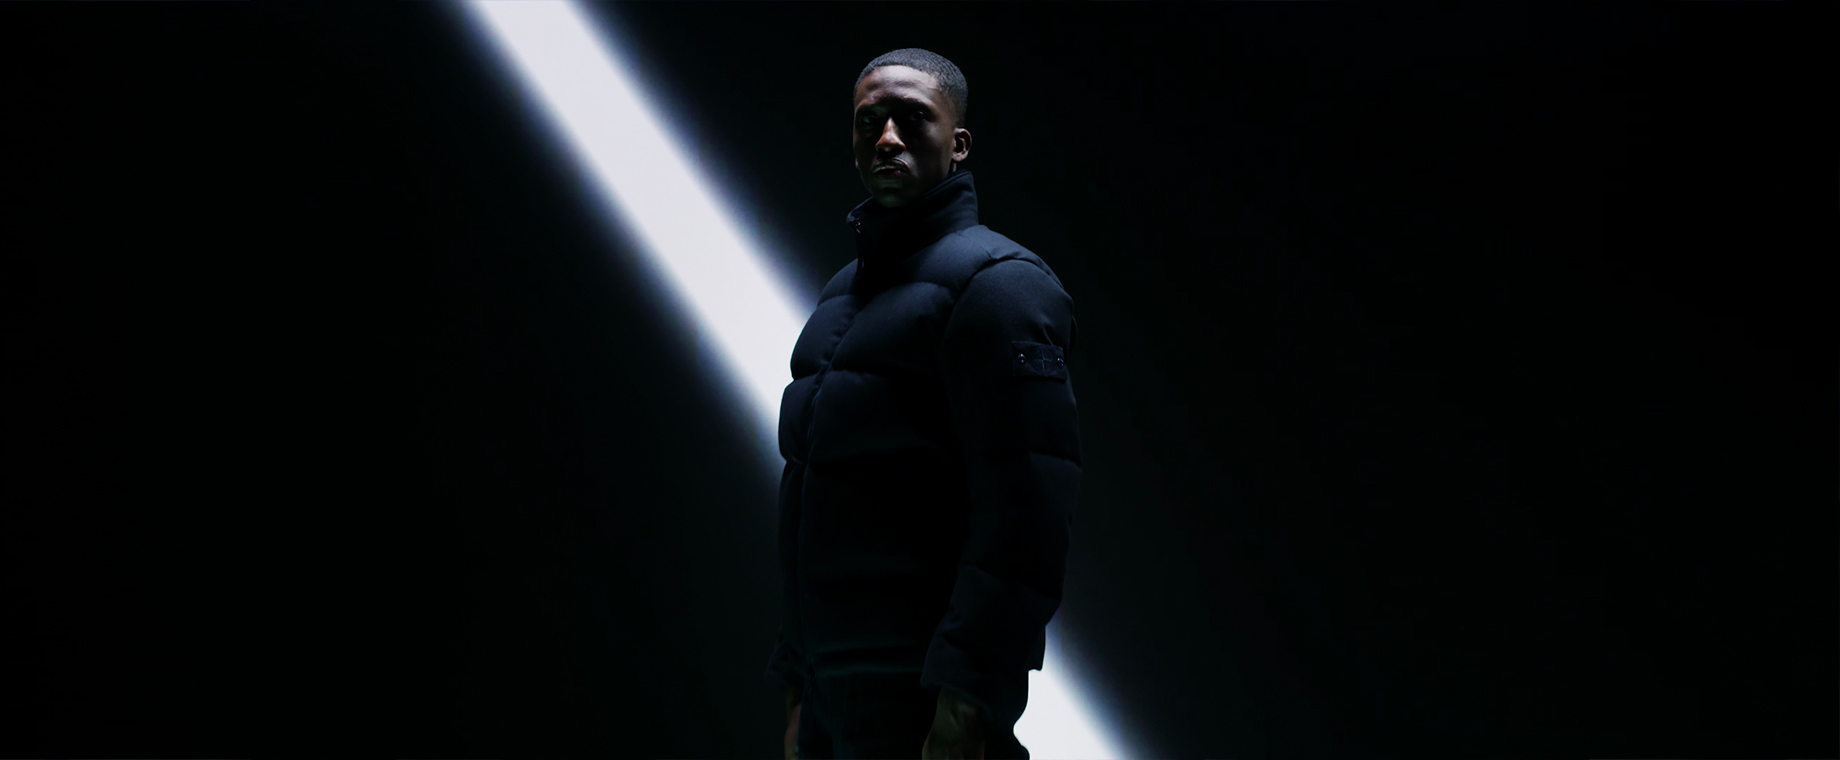 Model wearing a dark jacket in extreme low light, against a black backdrop with one diagonal beam of white light behind him.